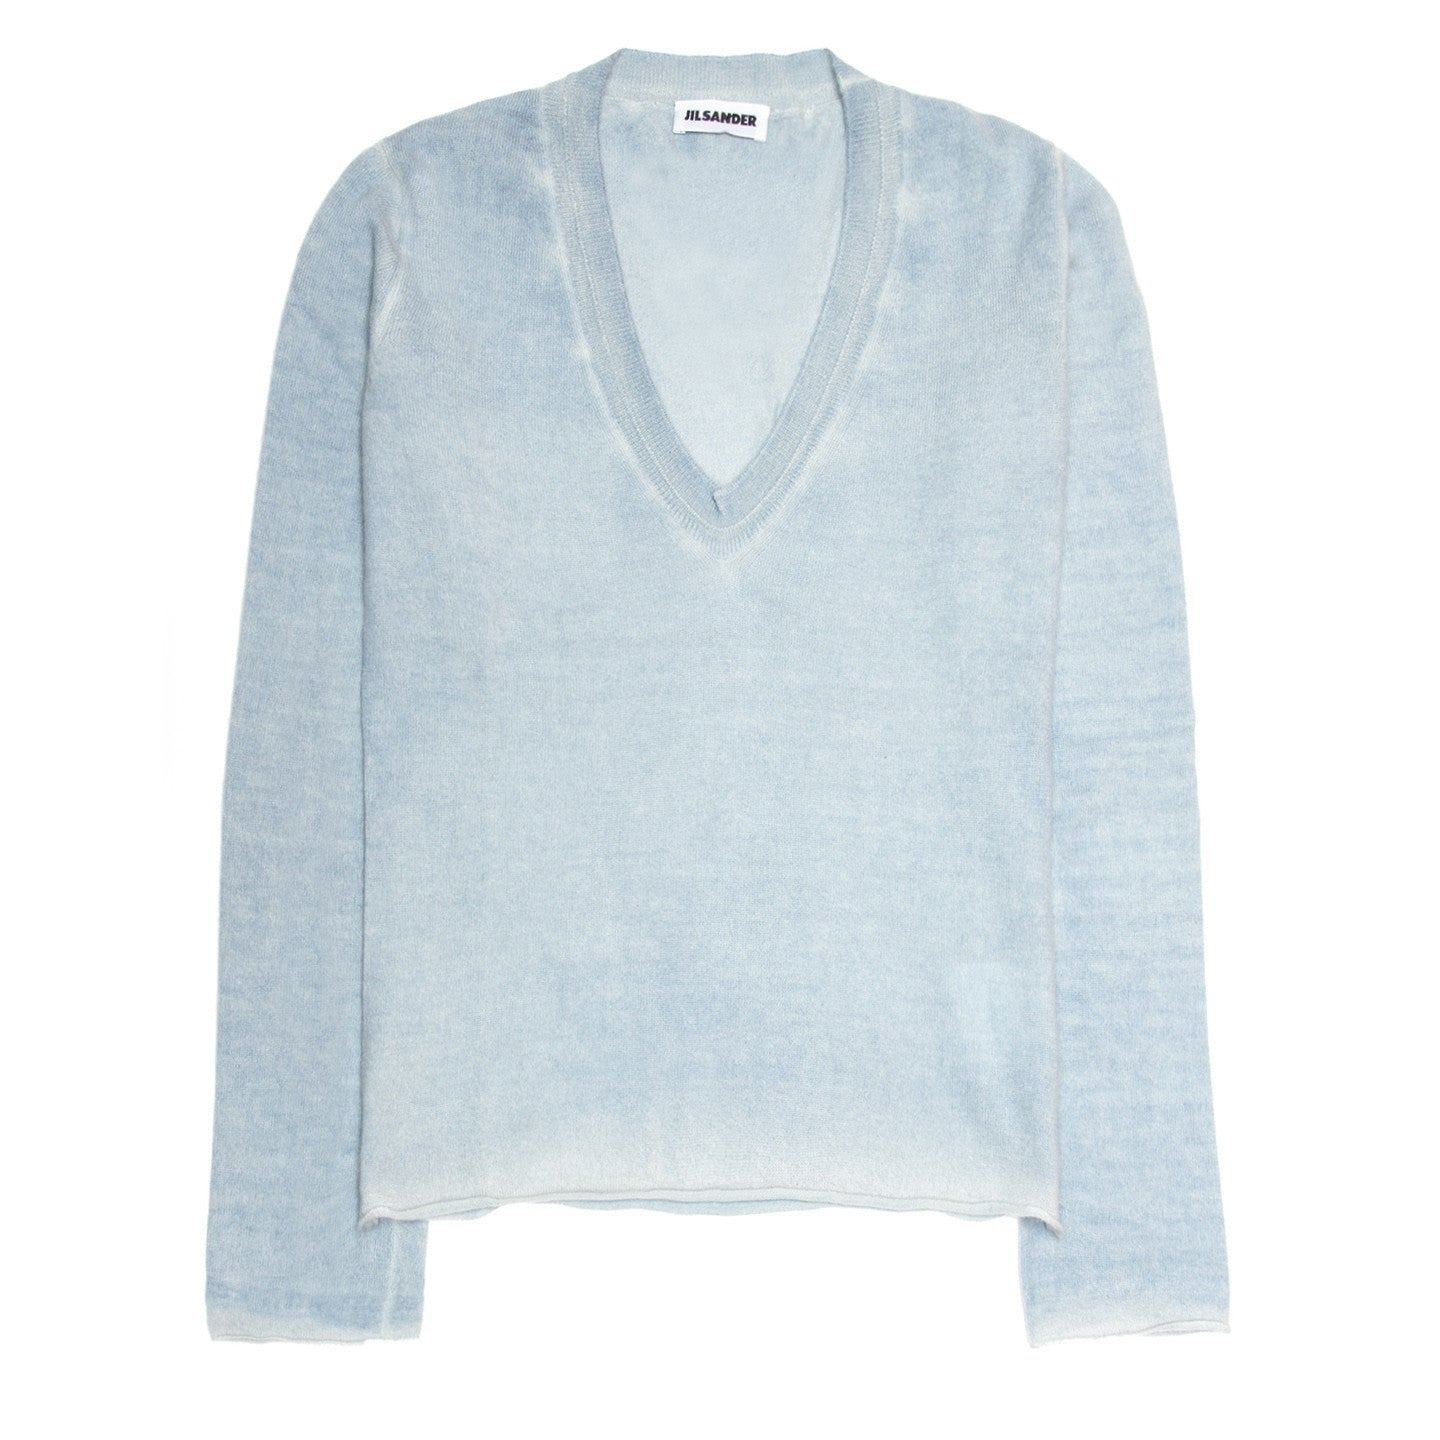 Find an authentic preowned Jil Sander Blue Cashmere Sprayed Sweater, size 38 (French) at BunnyJack, where a portion of every sale goes to charity.